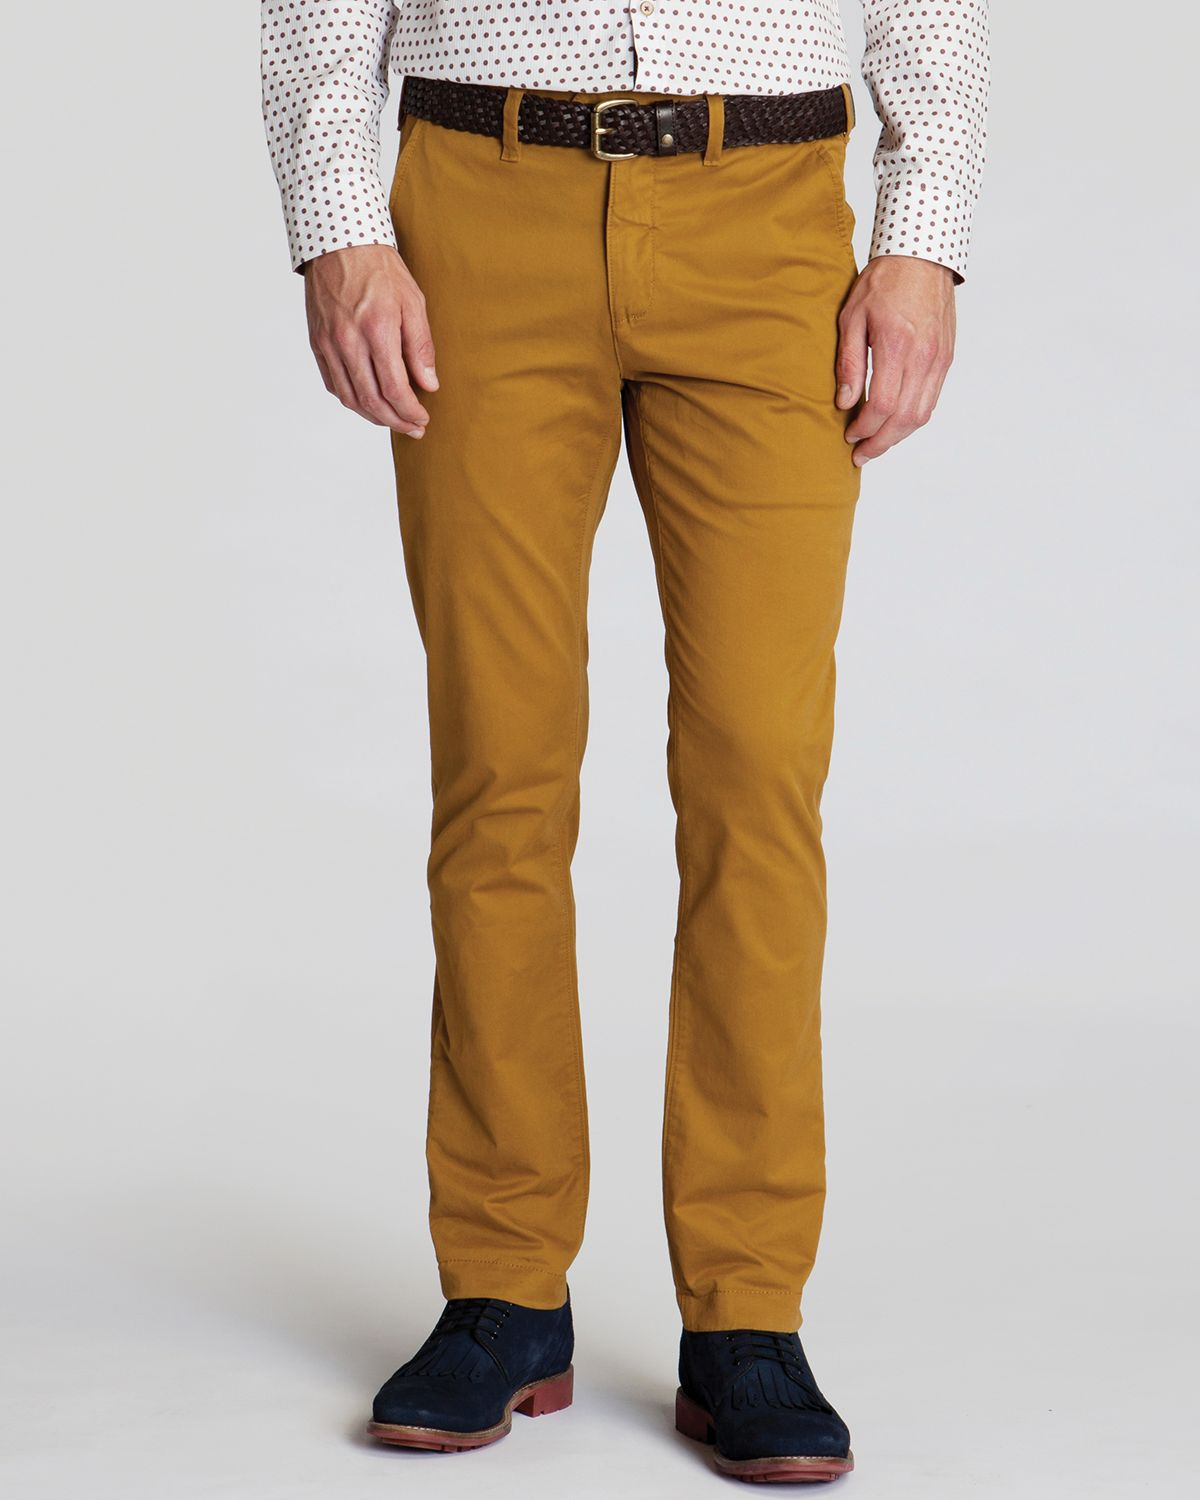 Colored Mens Jeans